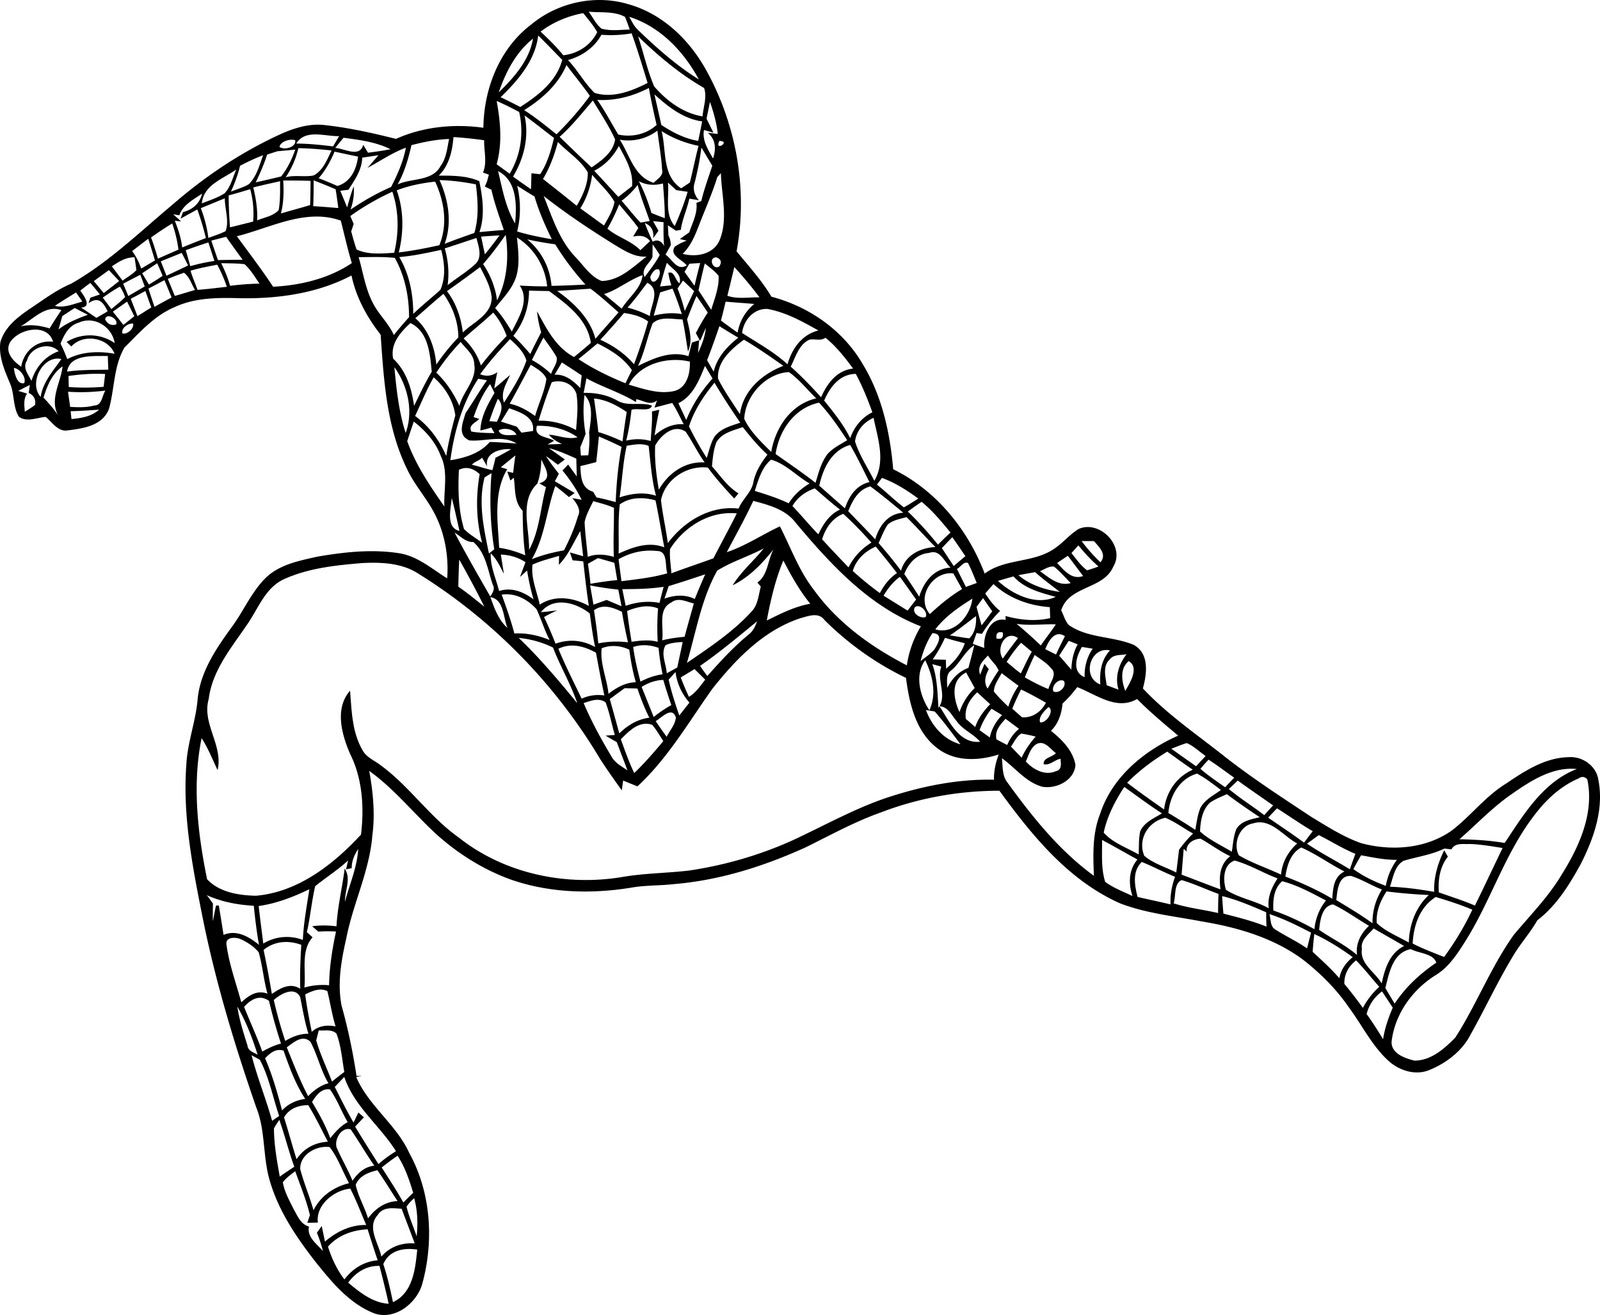 1600x1315 Free Printable Spiderman Coloring Pages For Kids Spiderman, Free